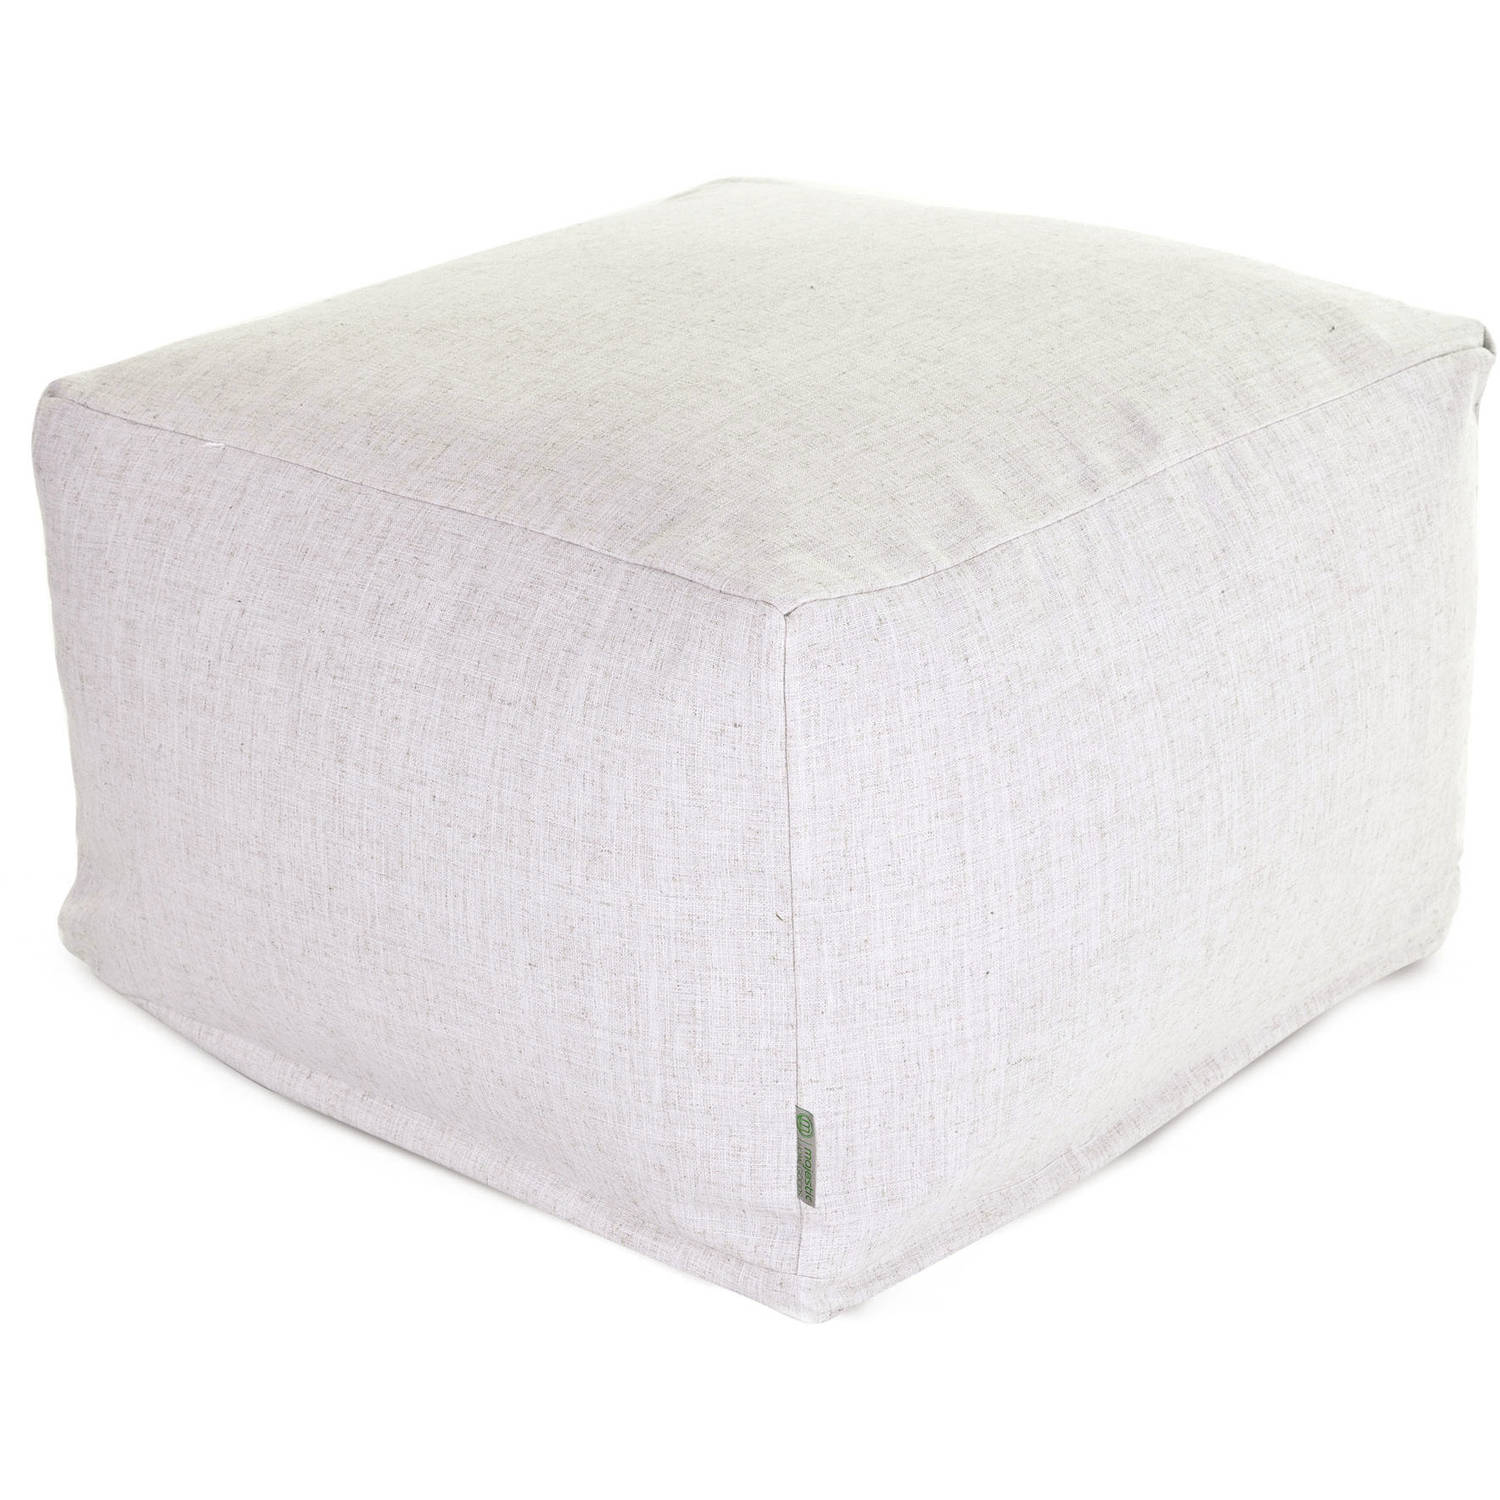 Majestic Home Goods Wales Bean Bag Ottoman